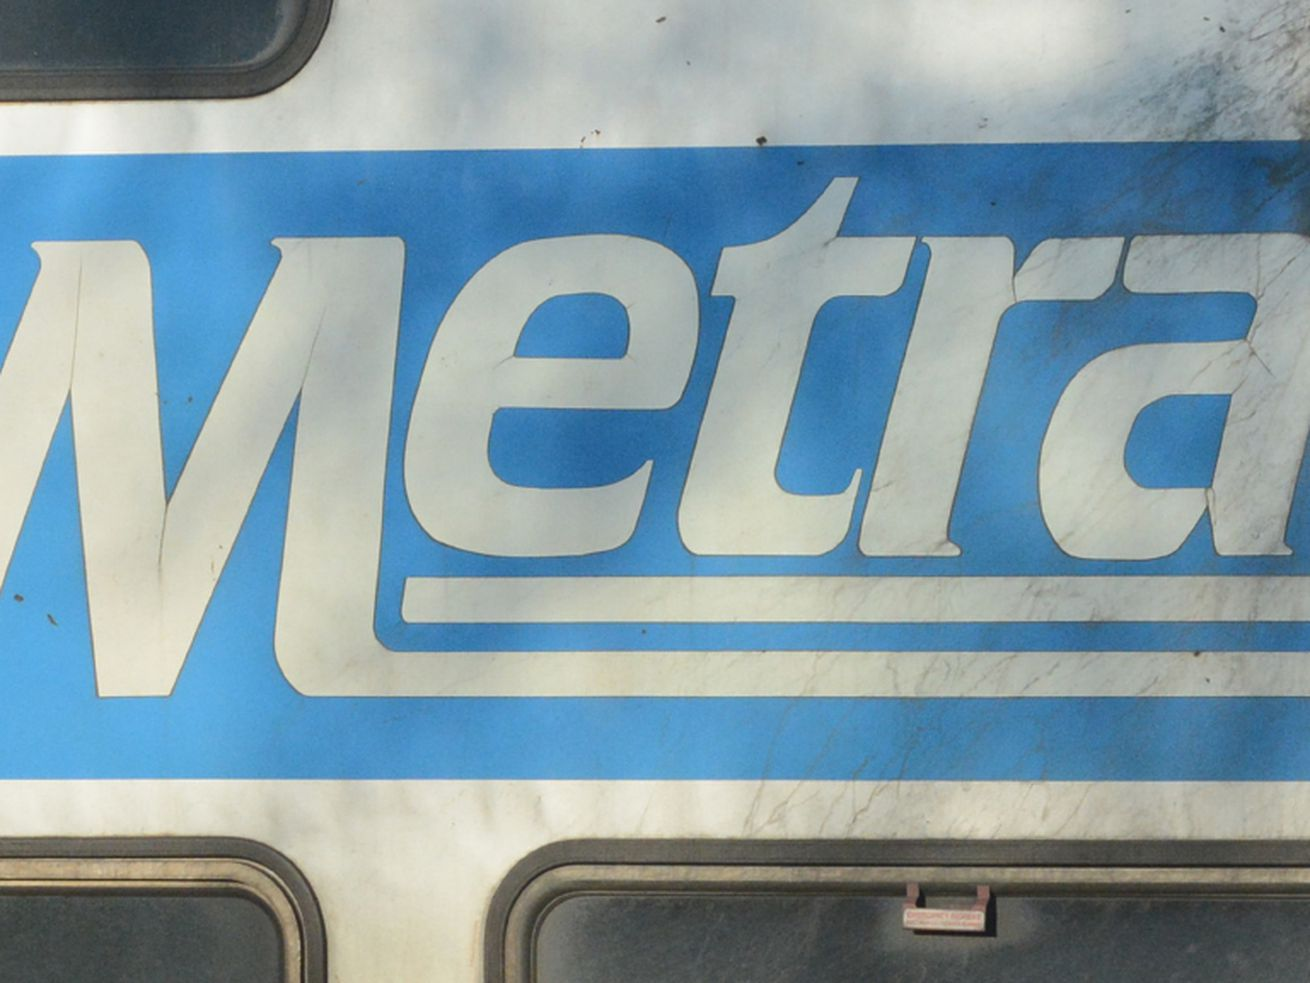 Metra Electric service disrupted due to police investigation in South Shore